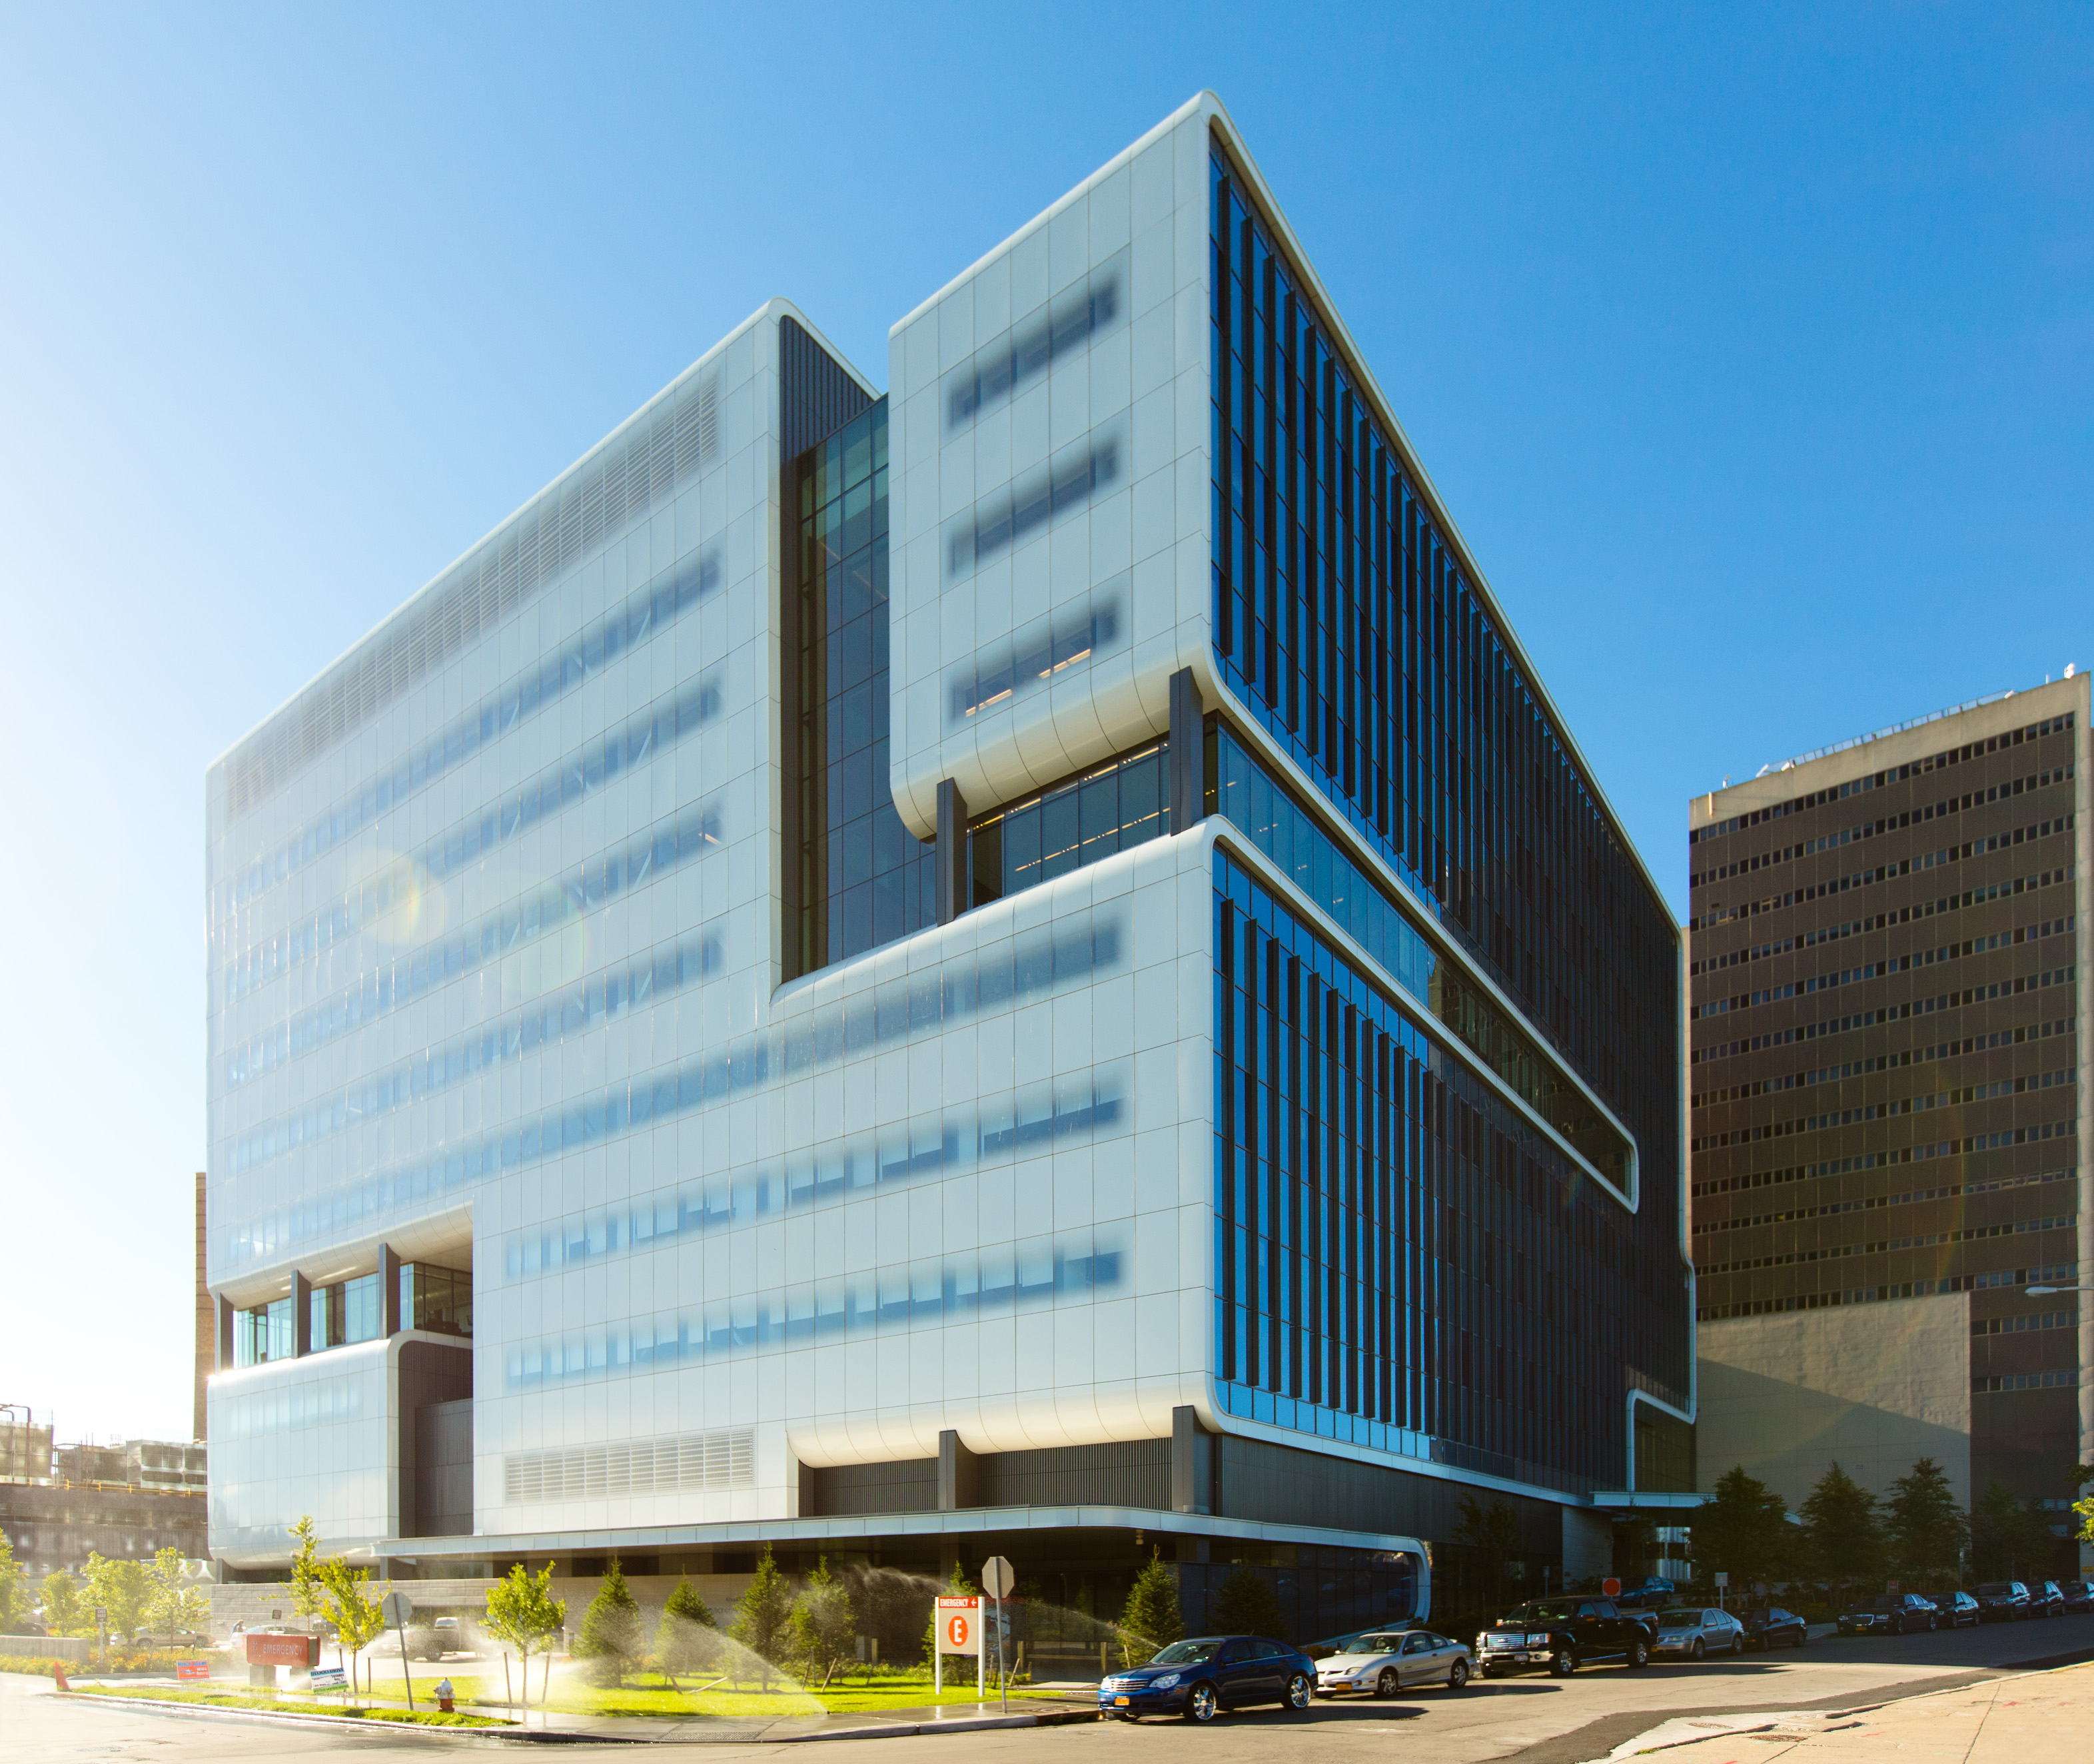 Greiner Hall And Ub Kaleida Health Building Win Awards For